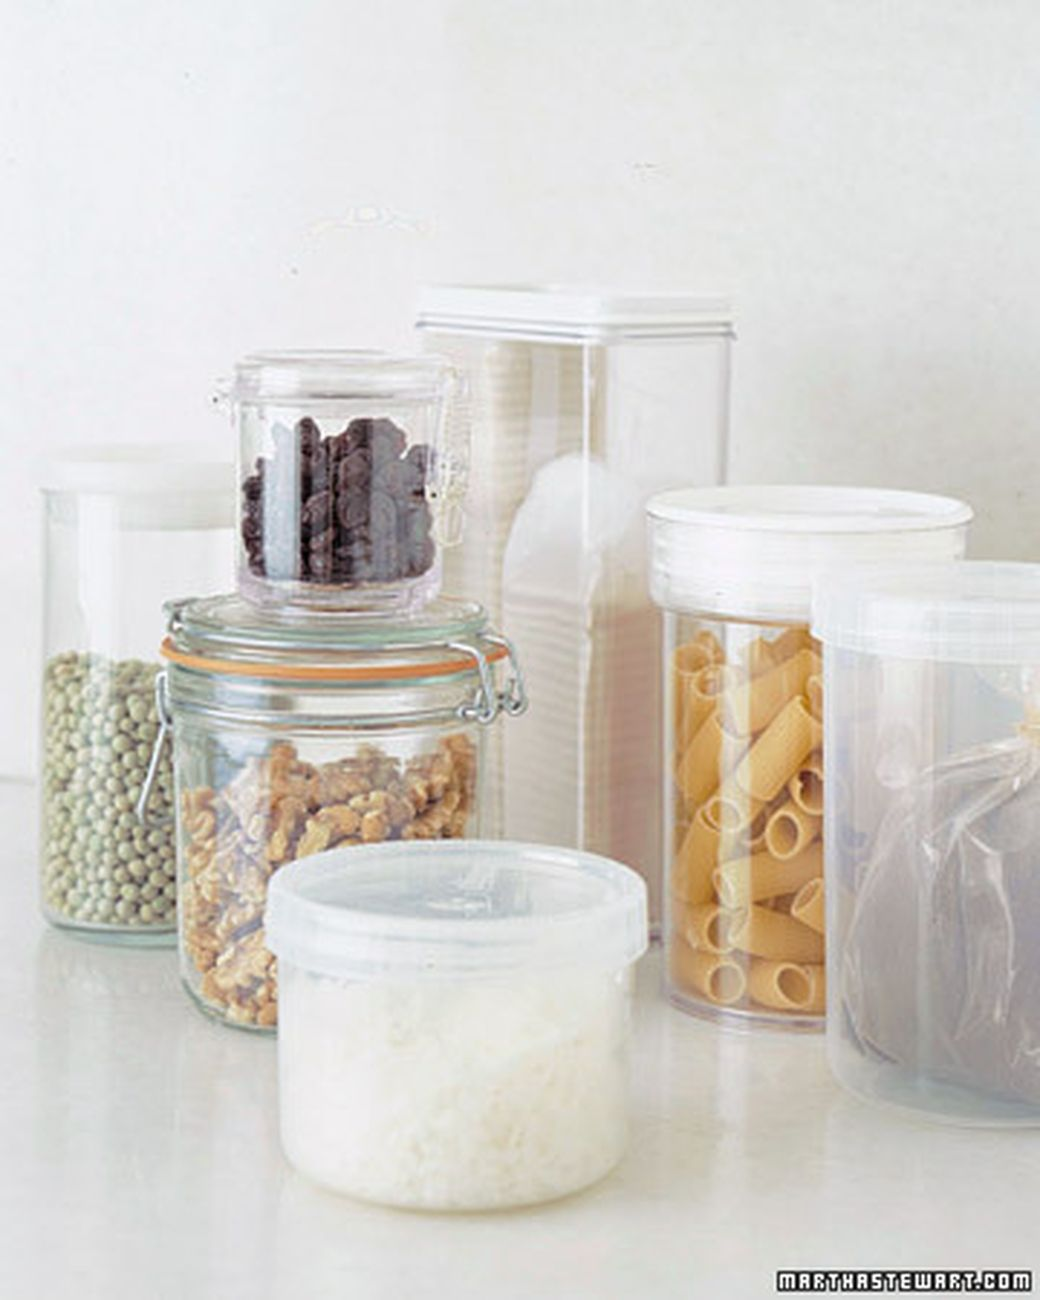 So you've cleaned the shelves and discarded all the stale items. Now how do you organize what's left? Try our functional yet stylish ideas to maintain your pantry so that everything is fresh, clearly labeled, and within easy reach for your next meal.